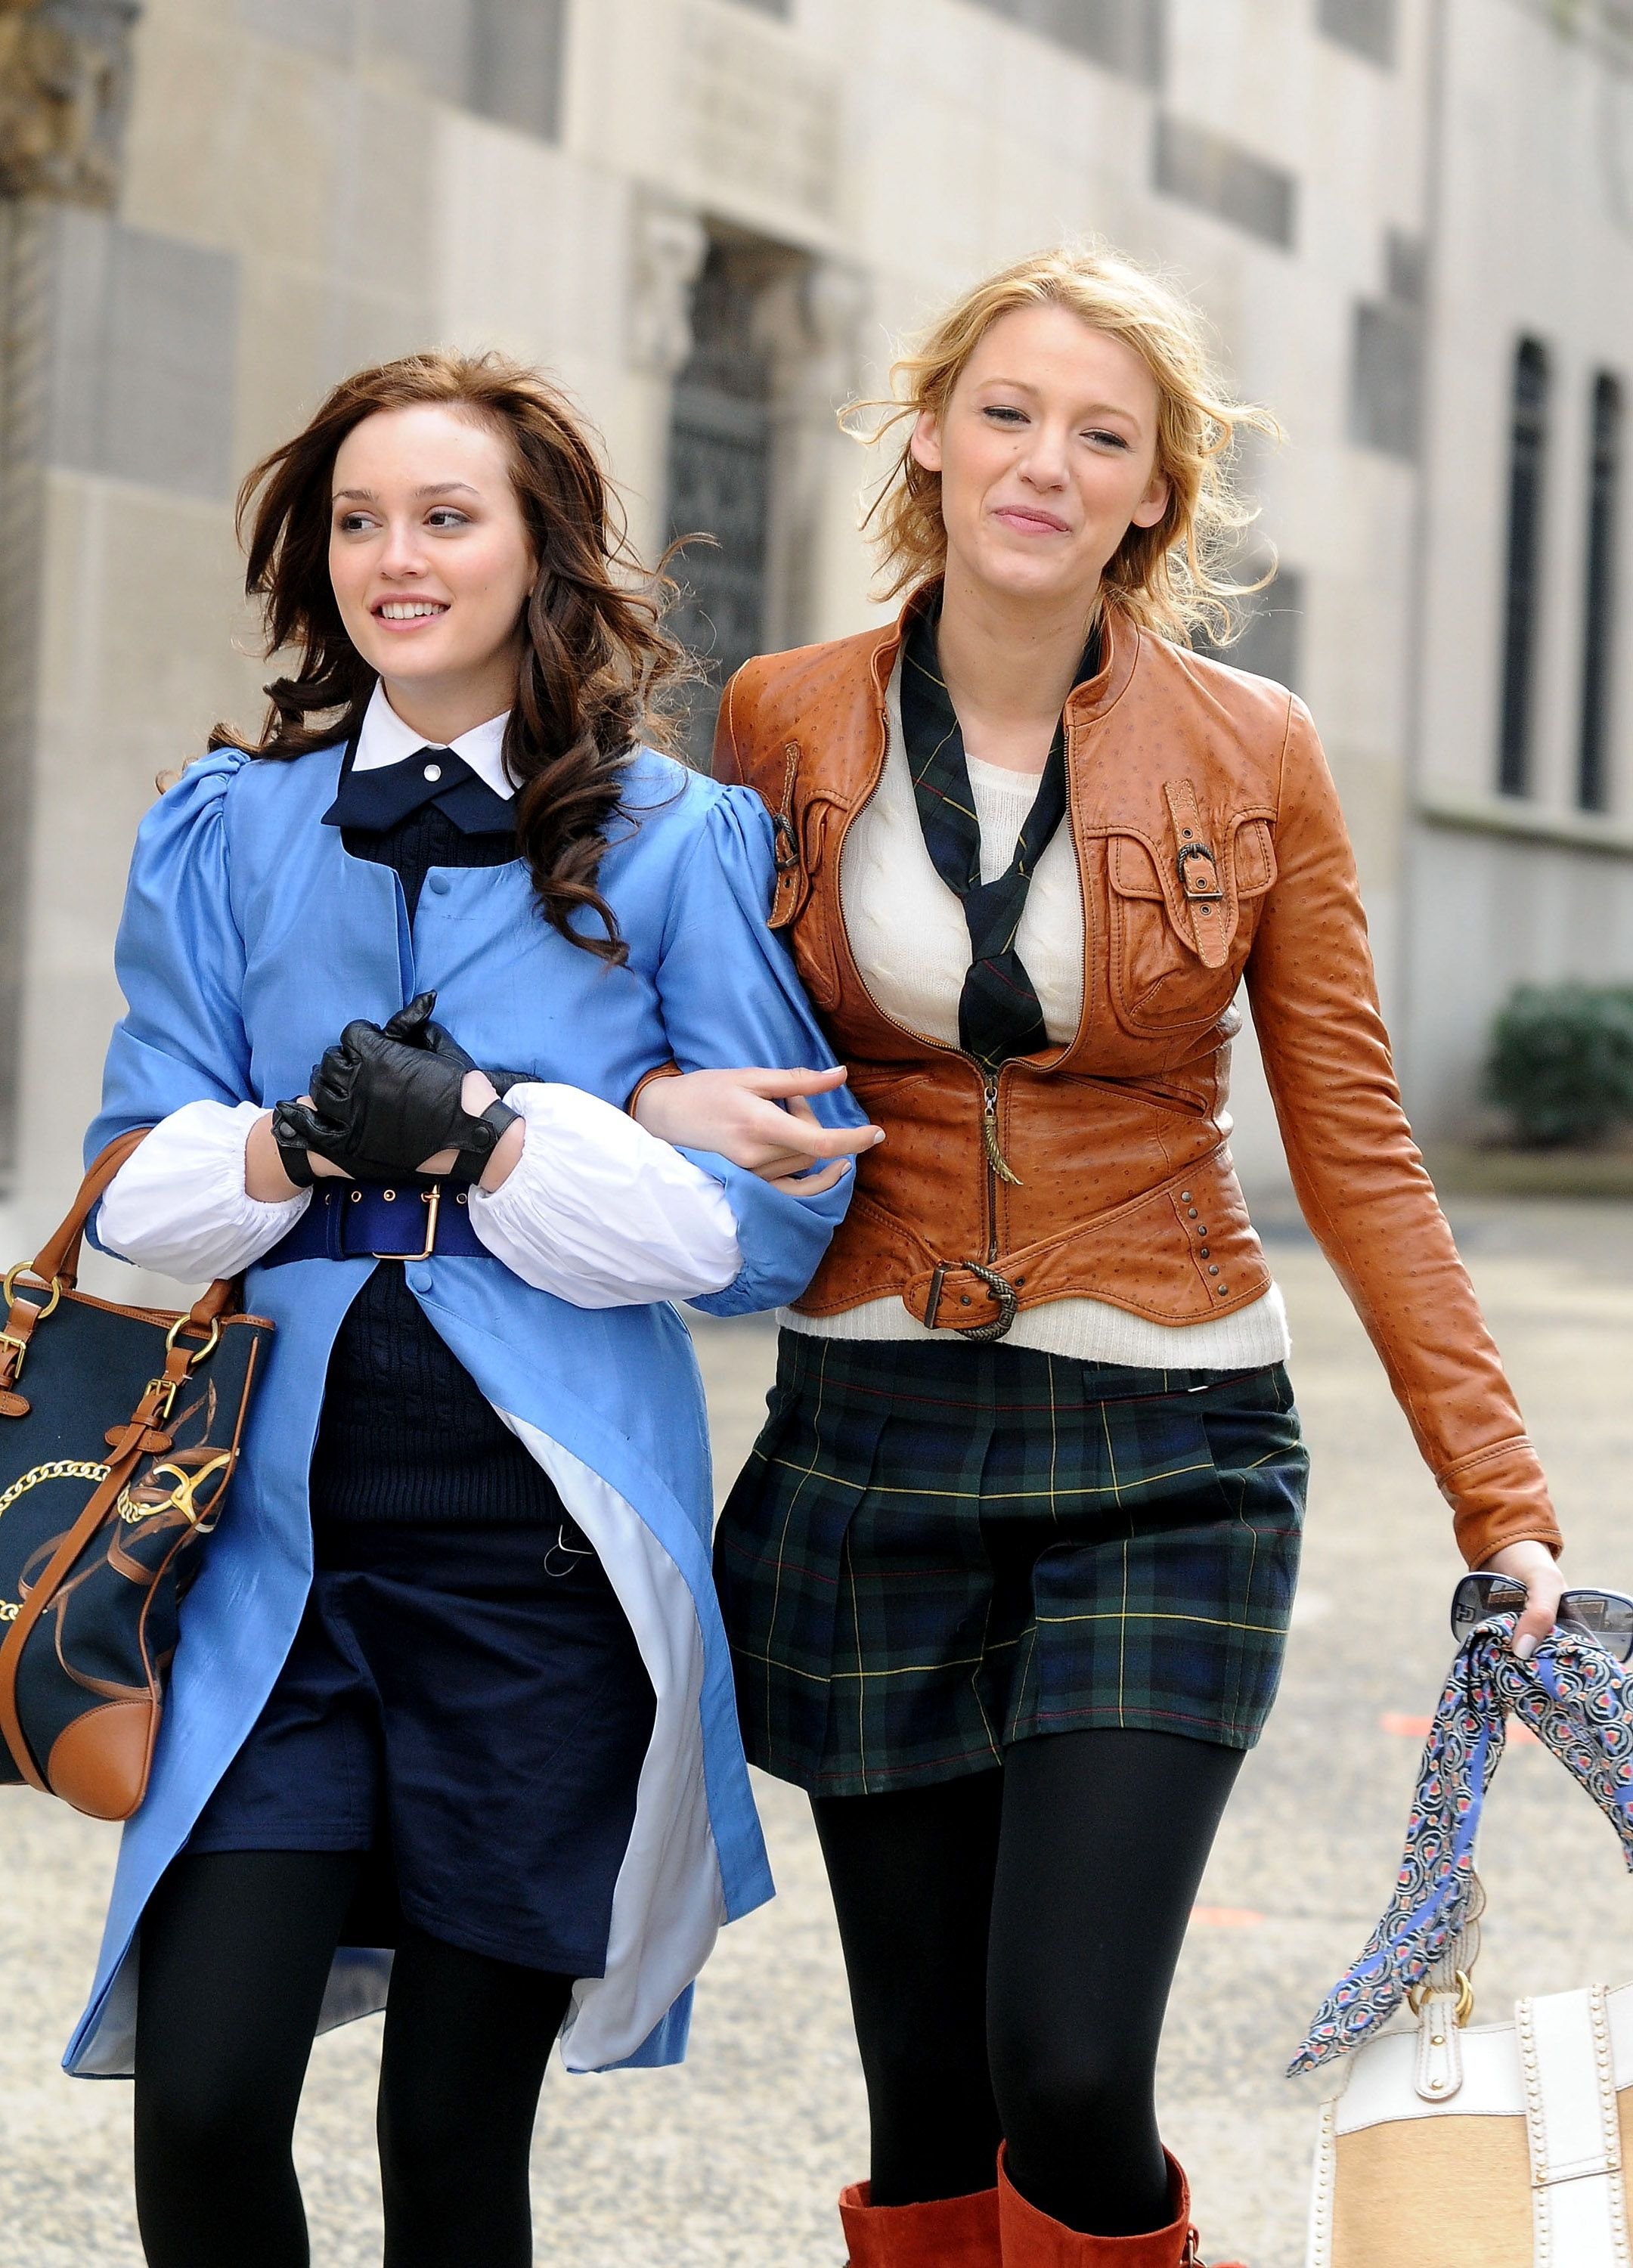 how old was blake lively filming gossip girl